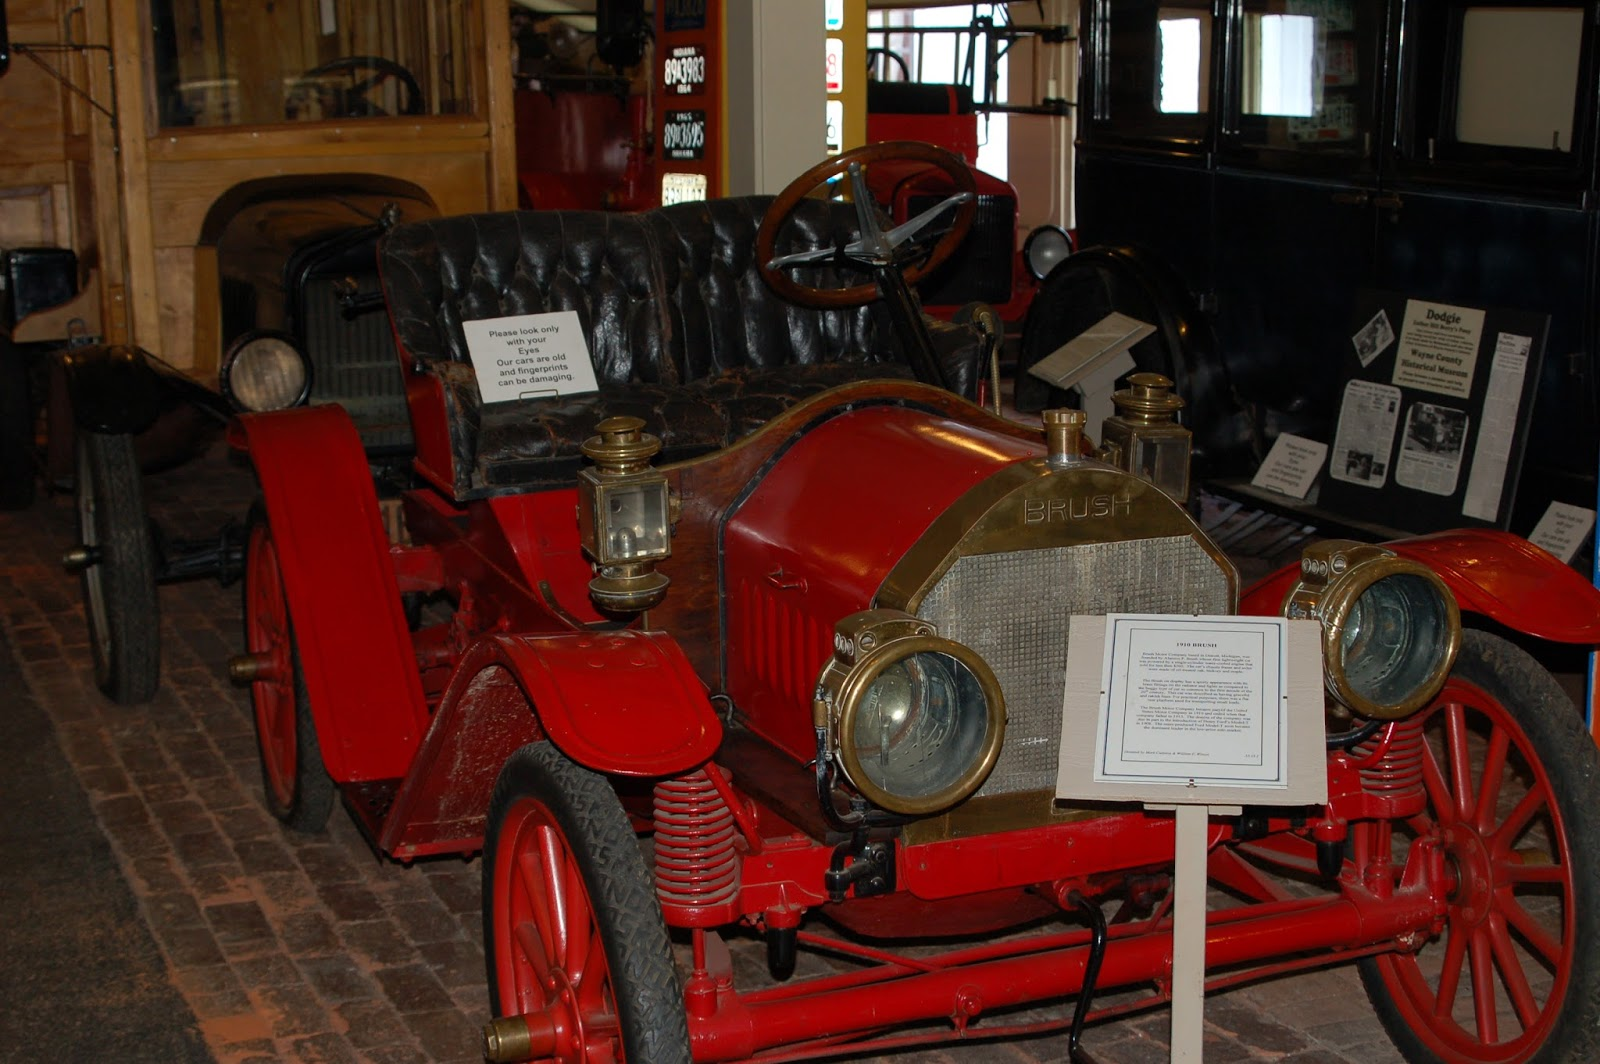 Indiana wayne county richmond -  1907 Richmond A 1920 Briggs And Stratton Red Bug A 1939 Crosley A 1921 Detroit Electric A 1912 Baker Electric A 1910 Brush A 1909 Richmond Touring